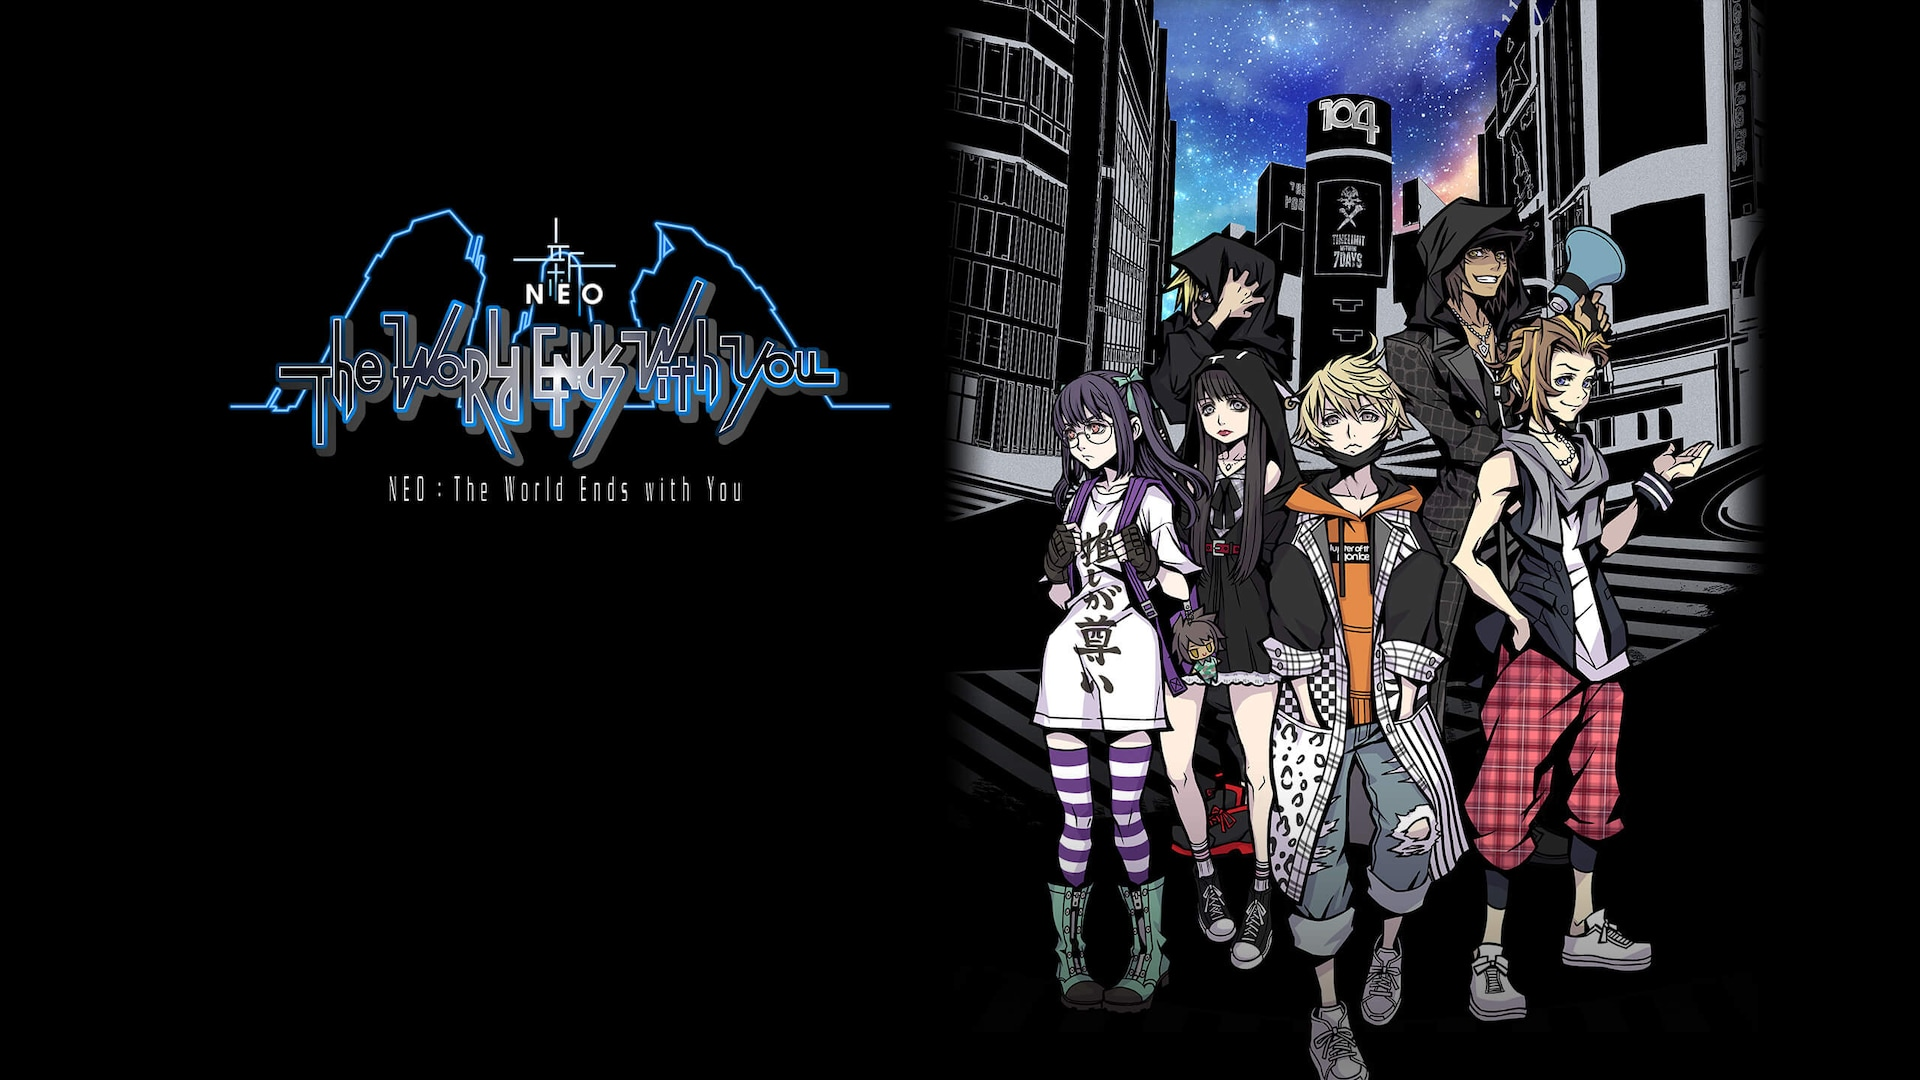 Pre-purchase NEO: The World Ends with You on Epic Games Store